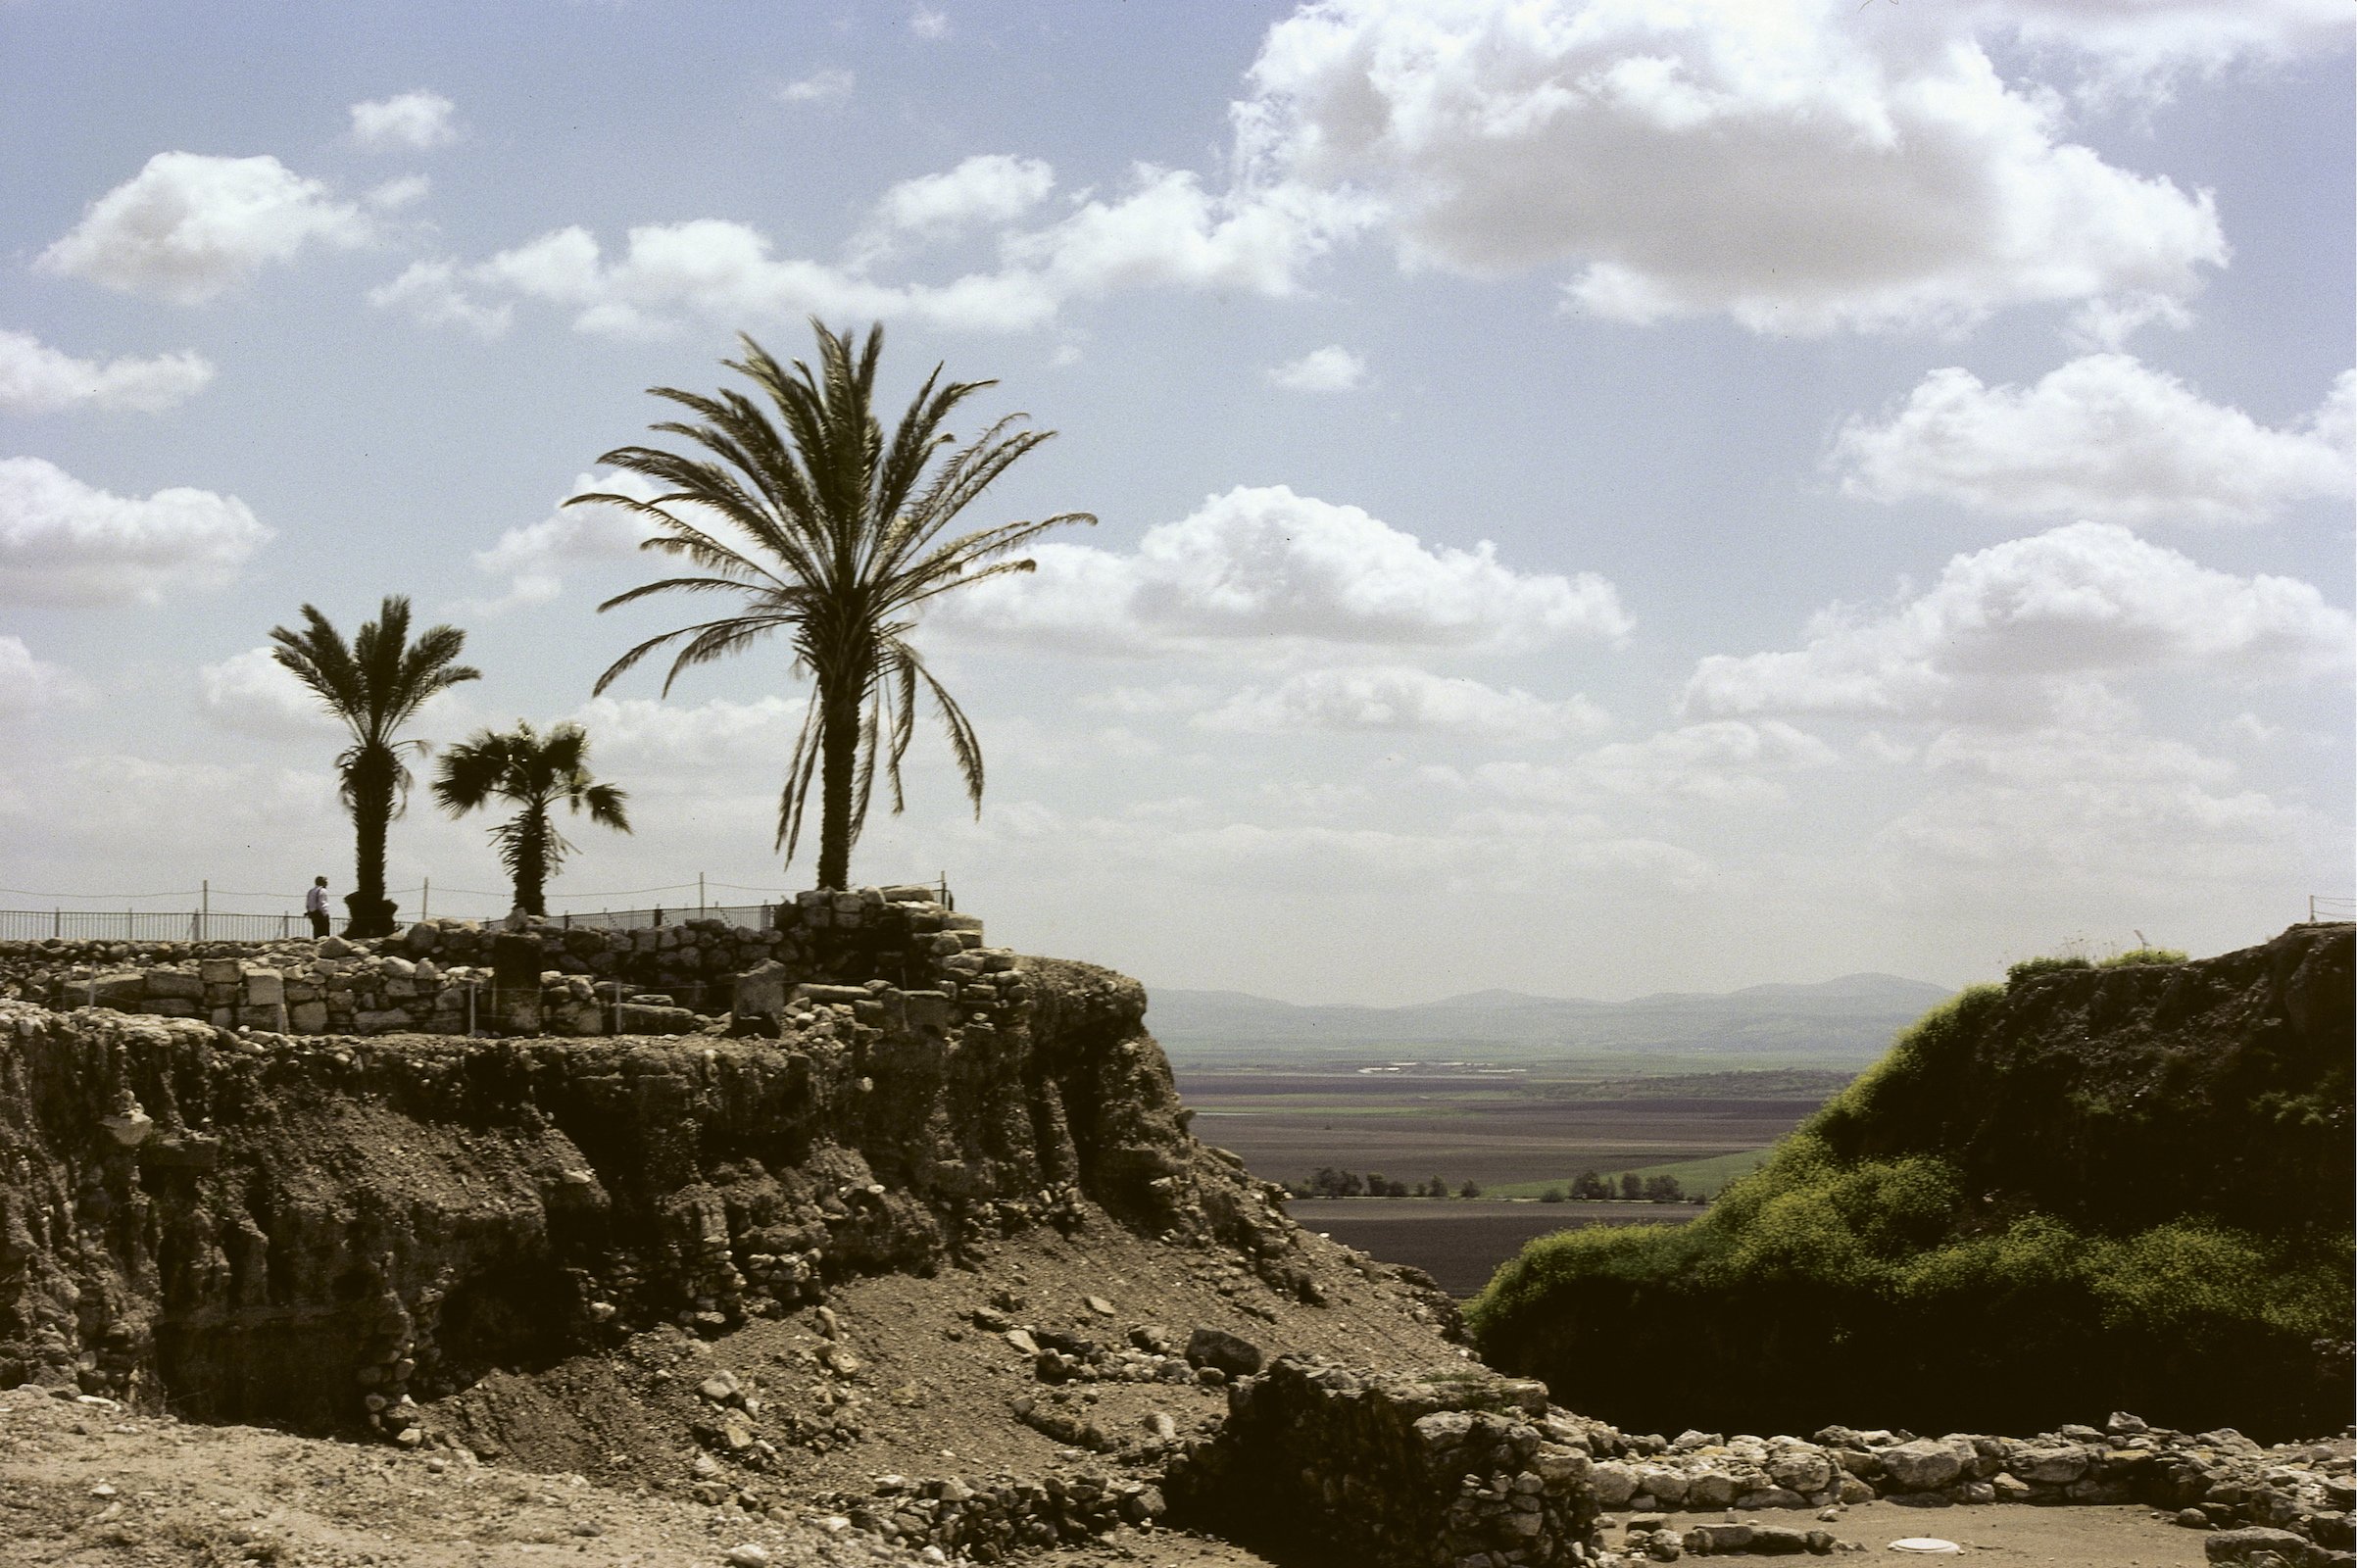 Tel Megiddo and the Valley of Jezreel, Israel. Photographed ca. 1990.